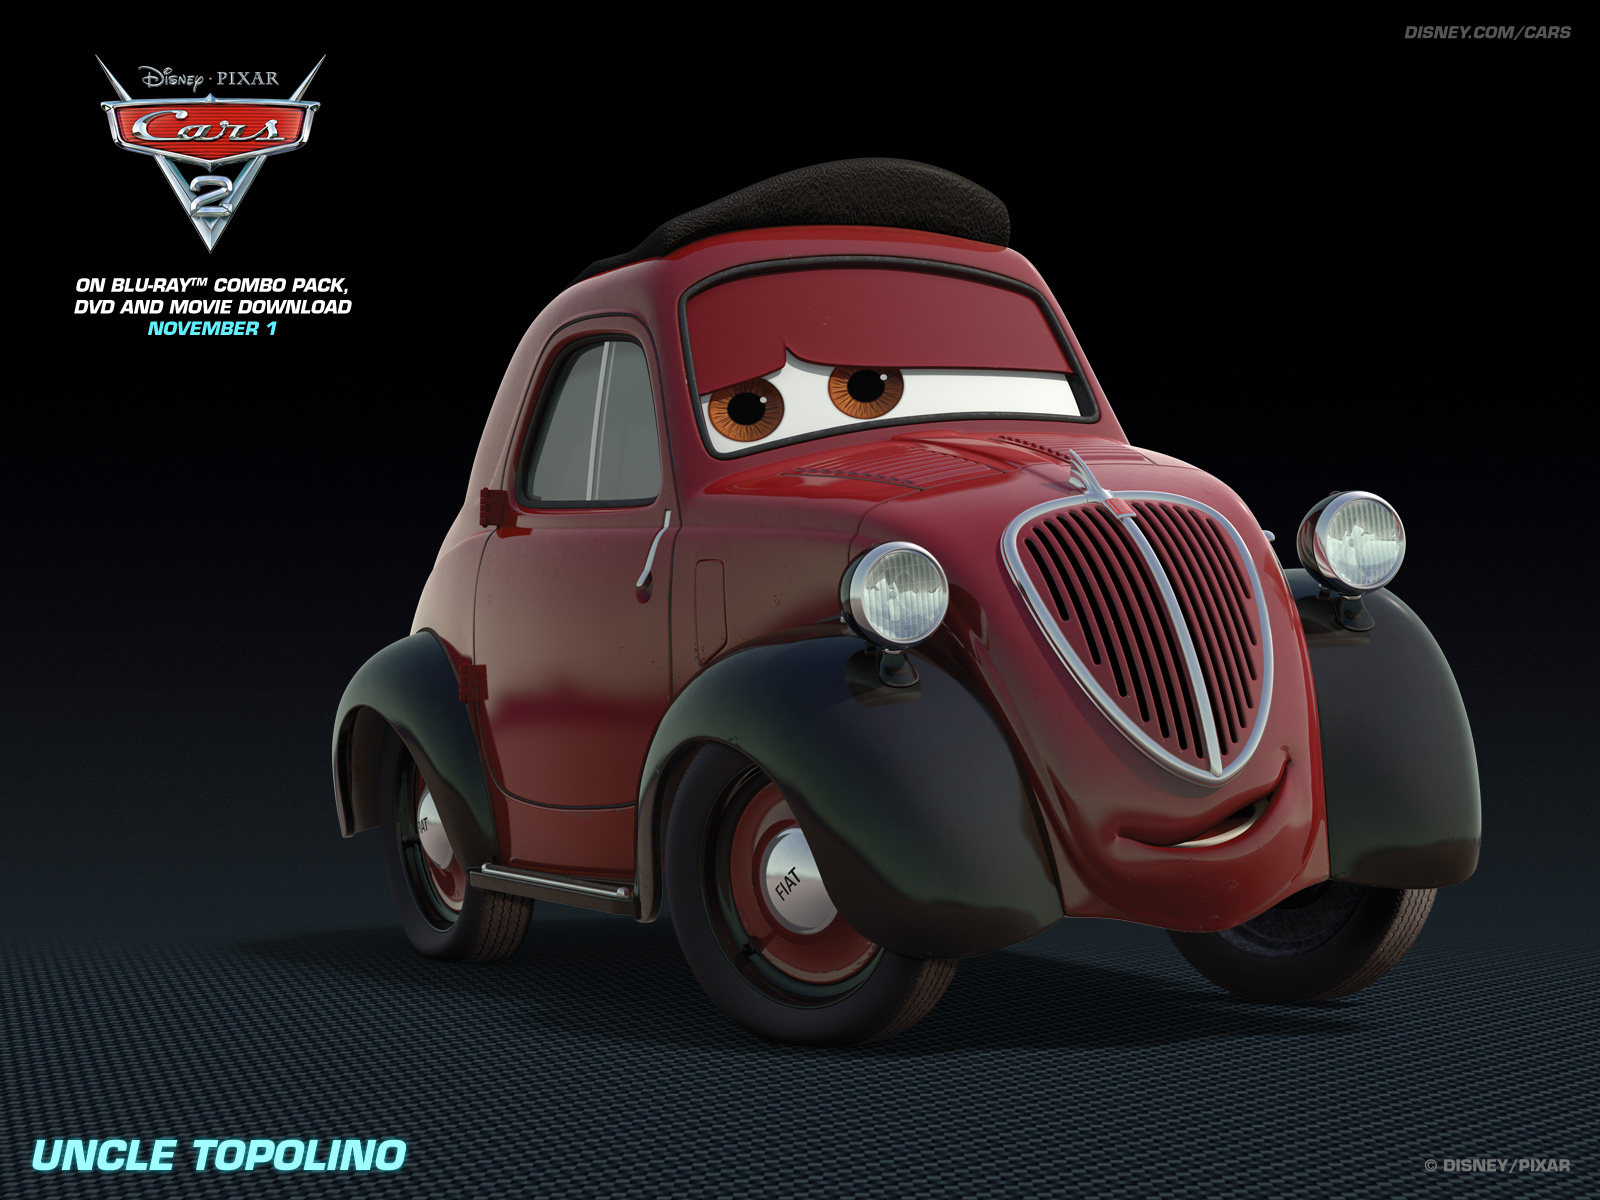 Disney pixar cars 2 umcle topolino